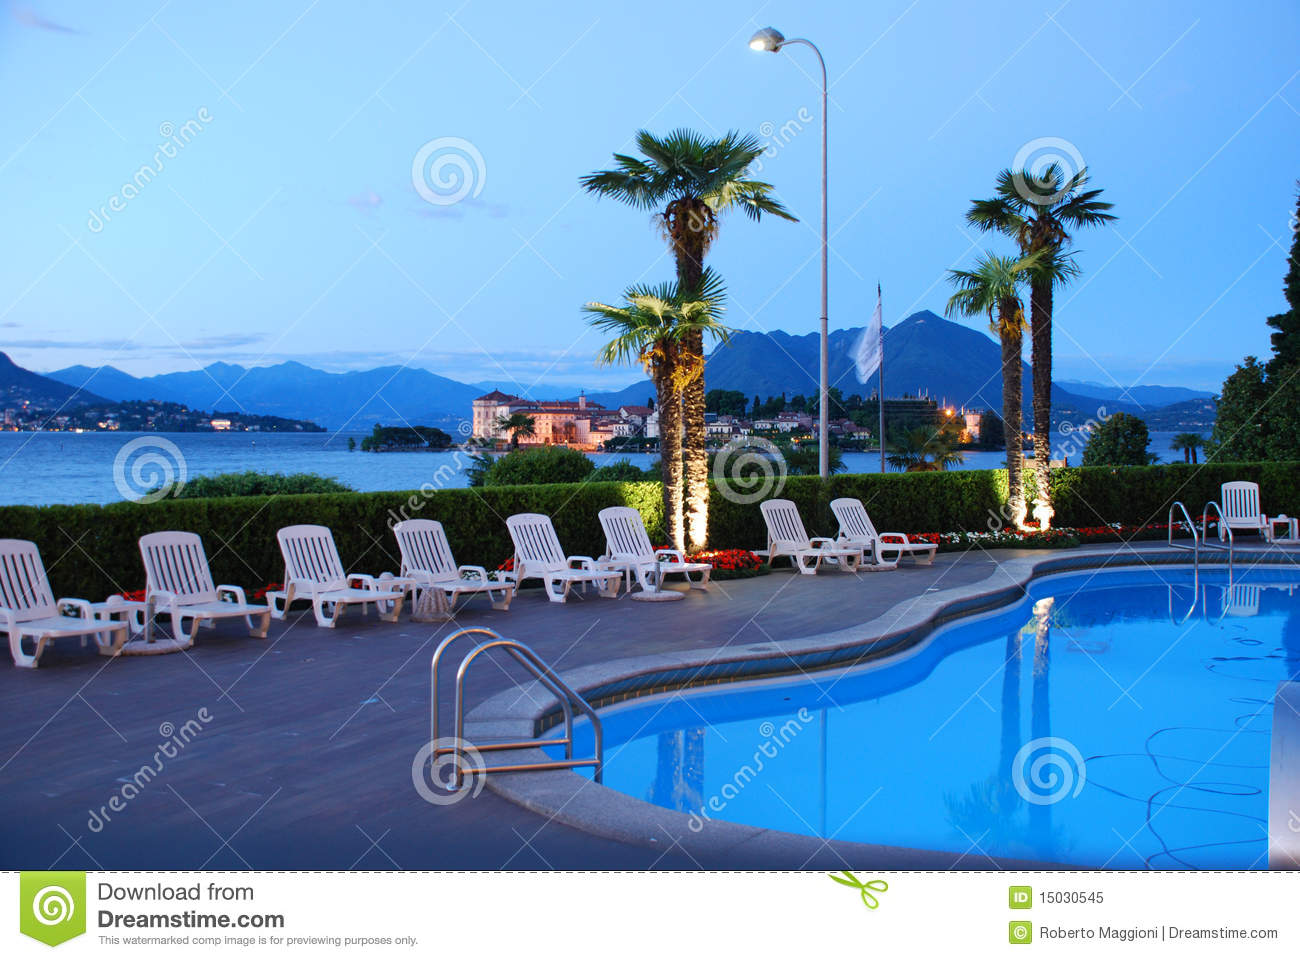 Luxury hotel lago maggiore italy swimming pool stock image image of luxurious lake 15030545 for Hotels in bologna italy with swimming pool